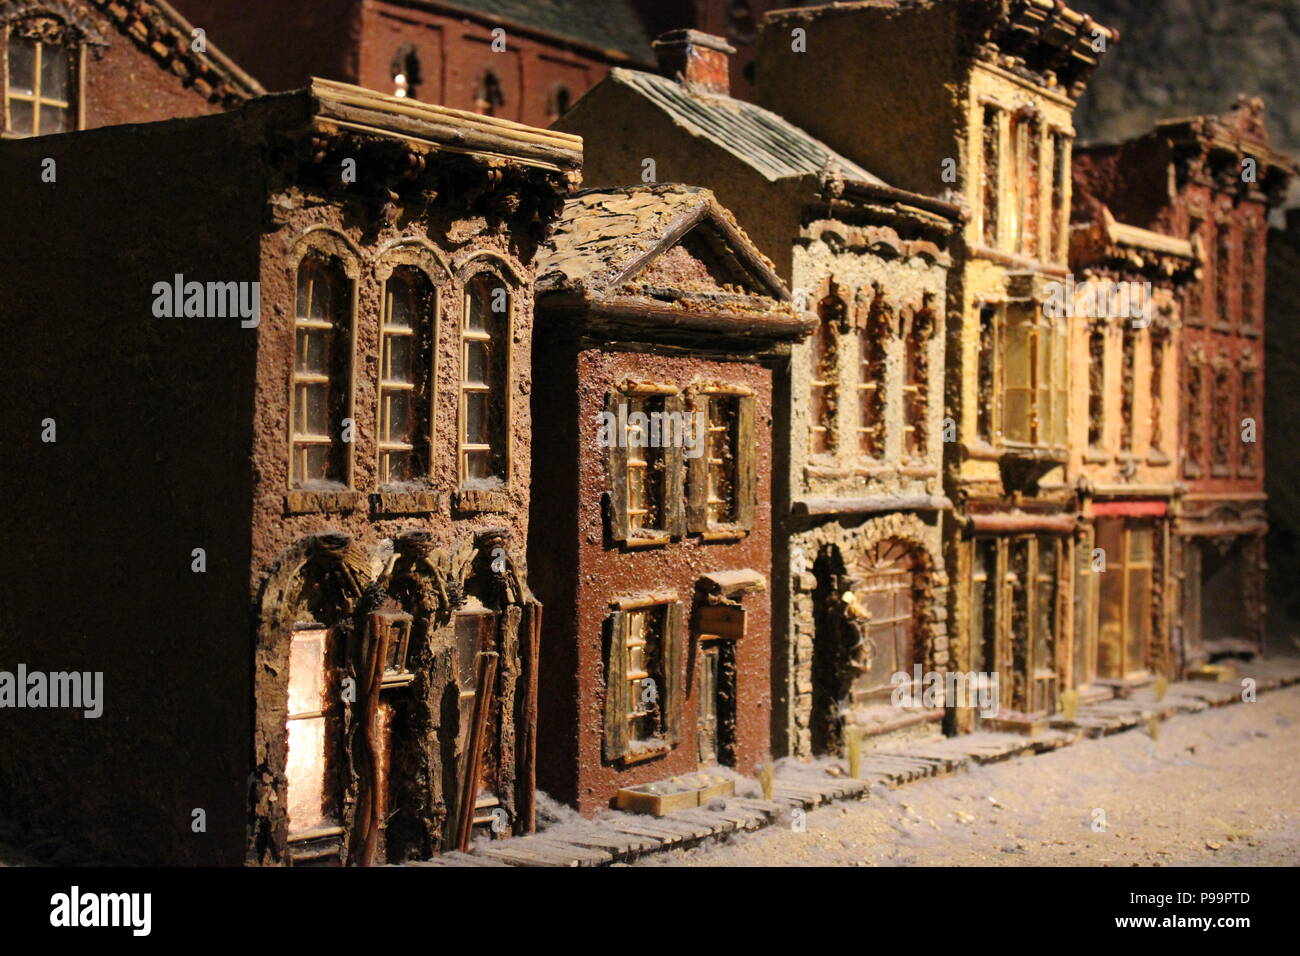 Miniature town at the Children's Museum at Indianapolis, Indiana. - Stock Image